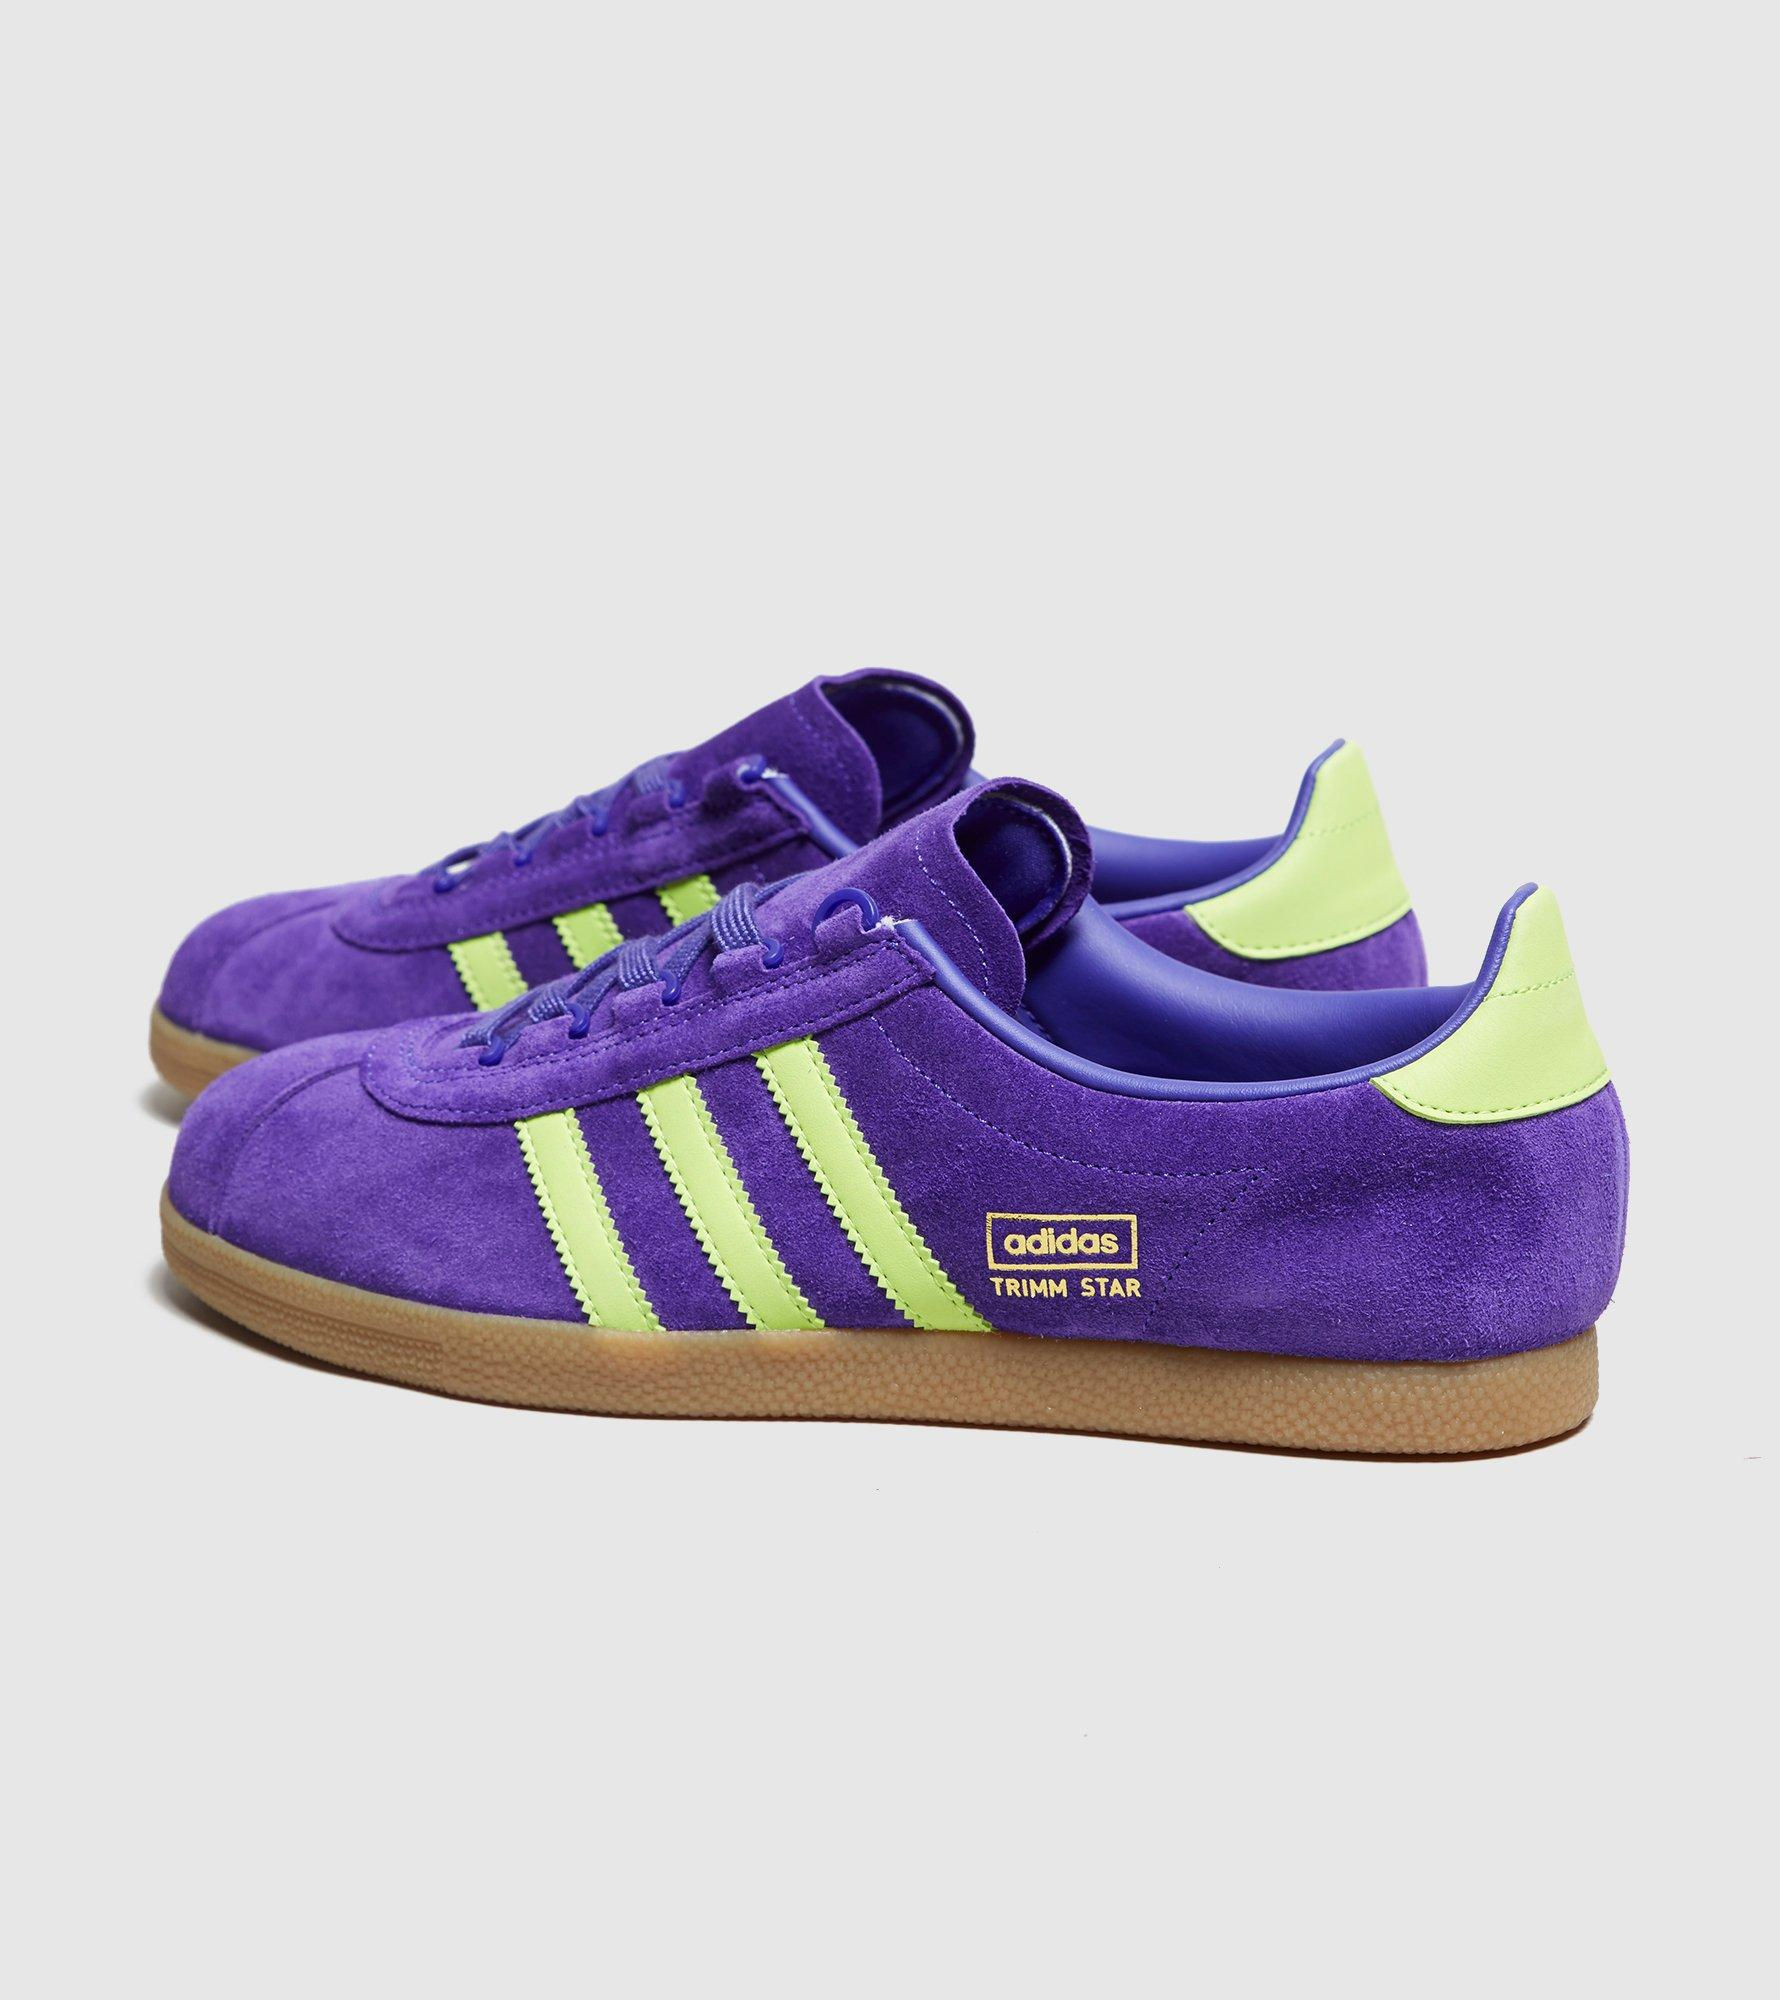 adidas Originals Trimm Star - Size  Exclusive in Purple for Men - Lyst d195488ce